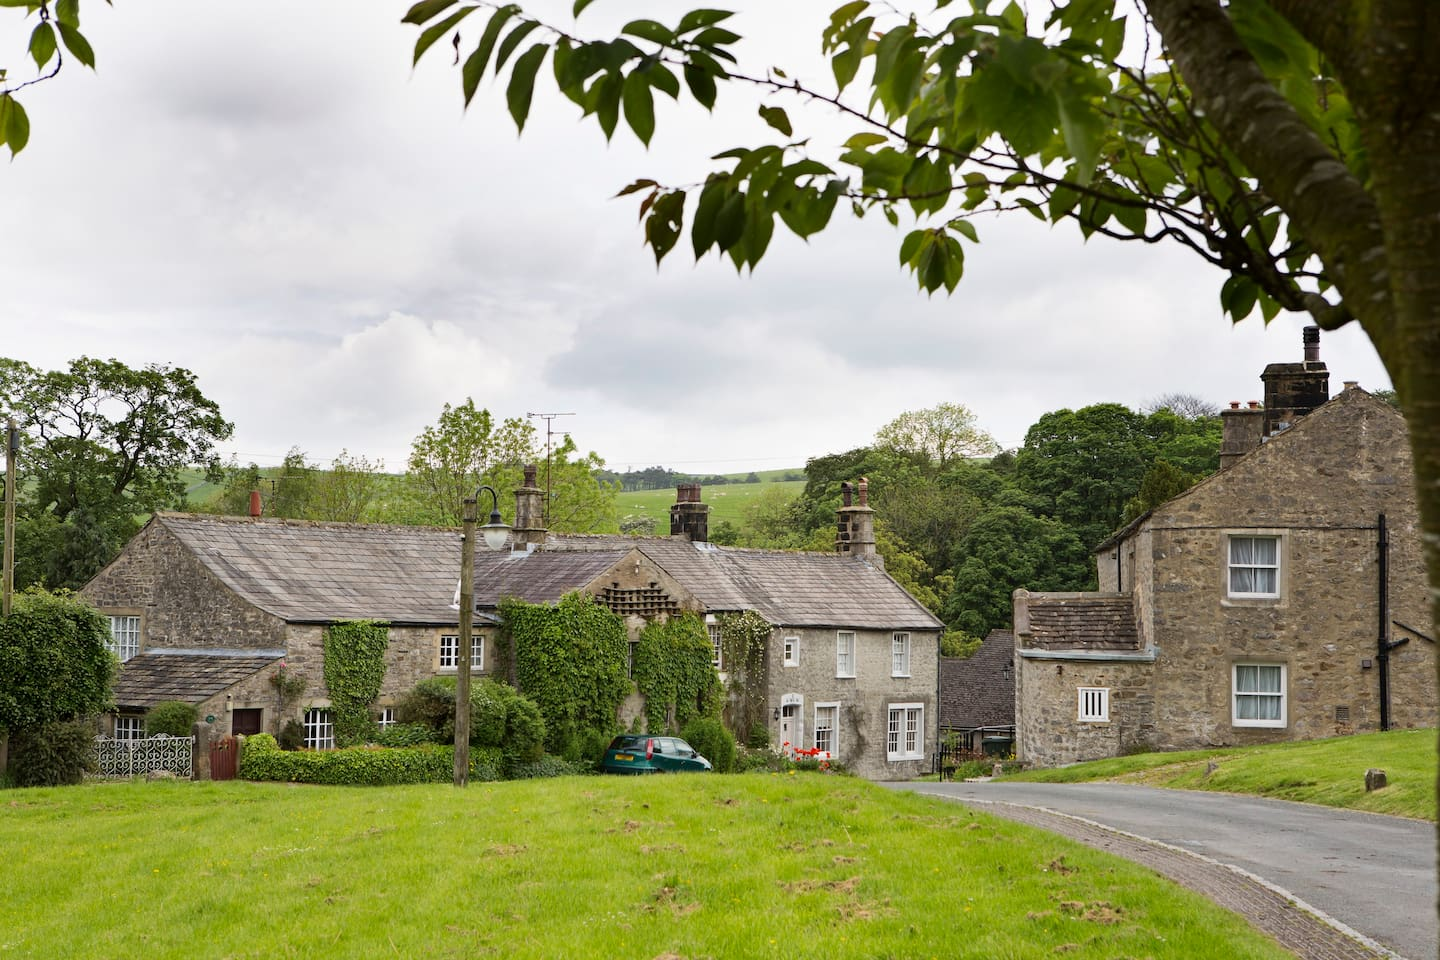 The picturesque Dales village of Airton